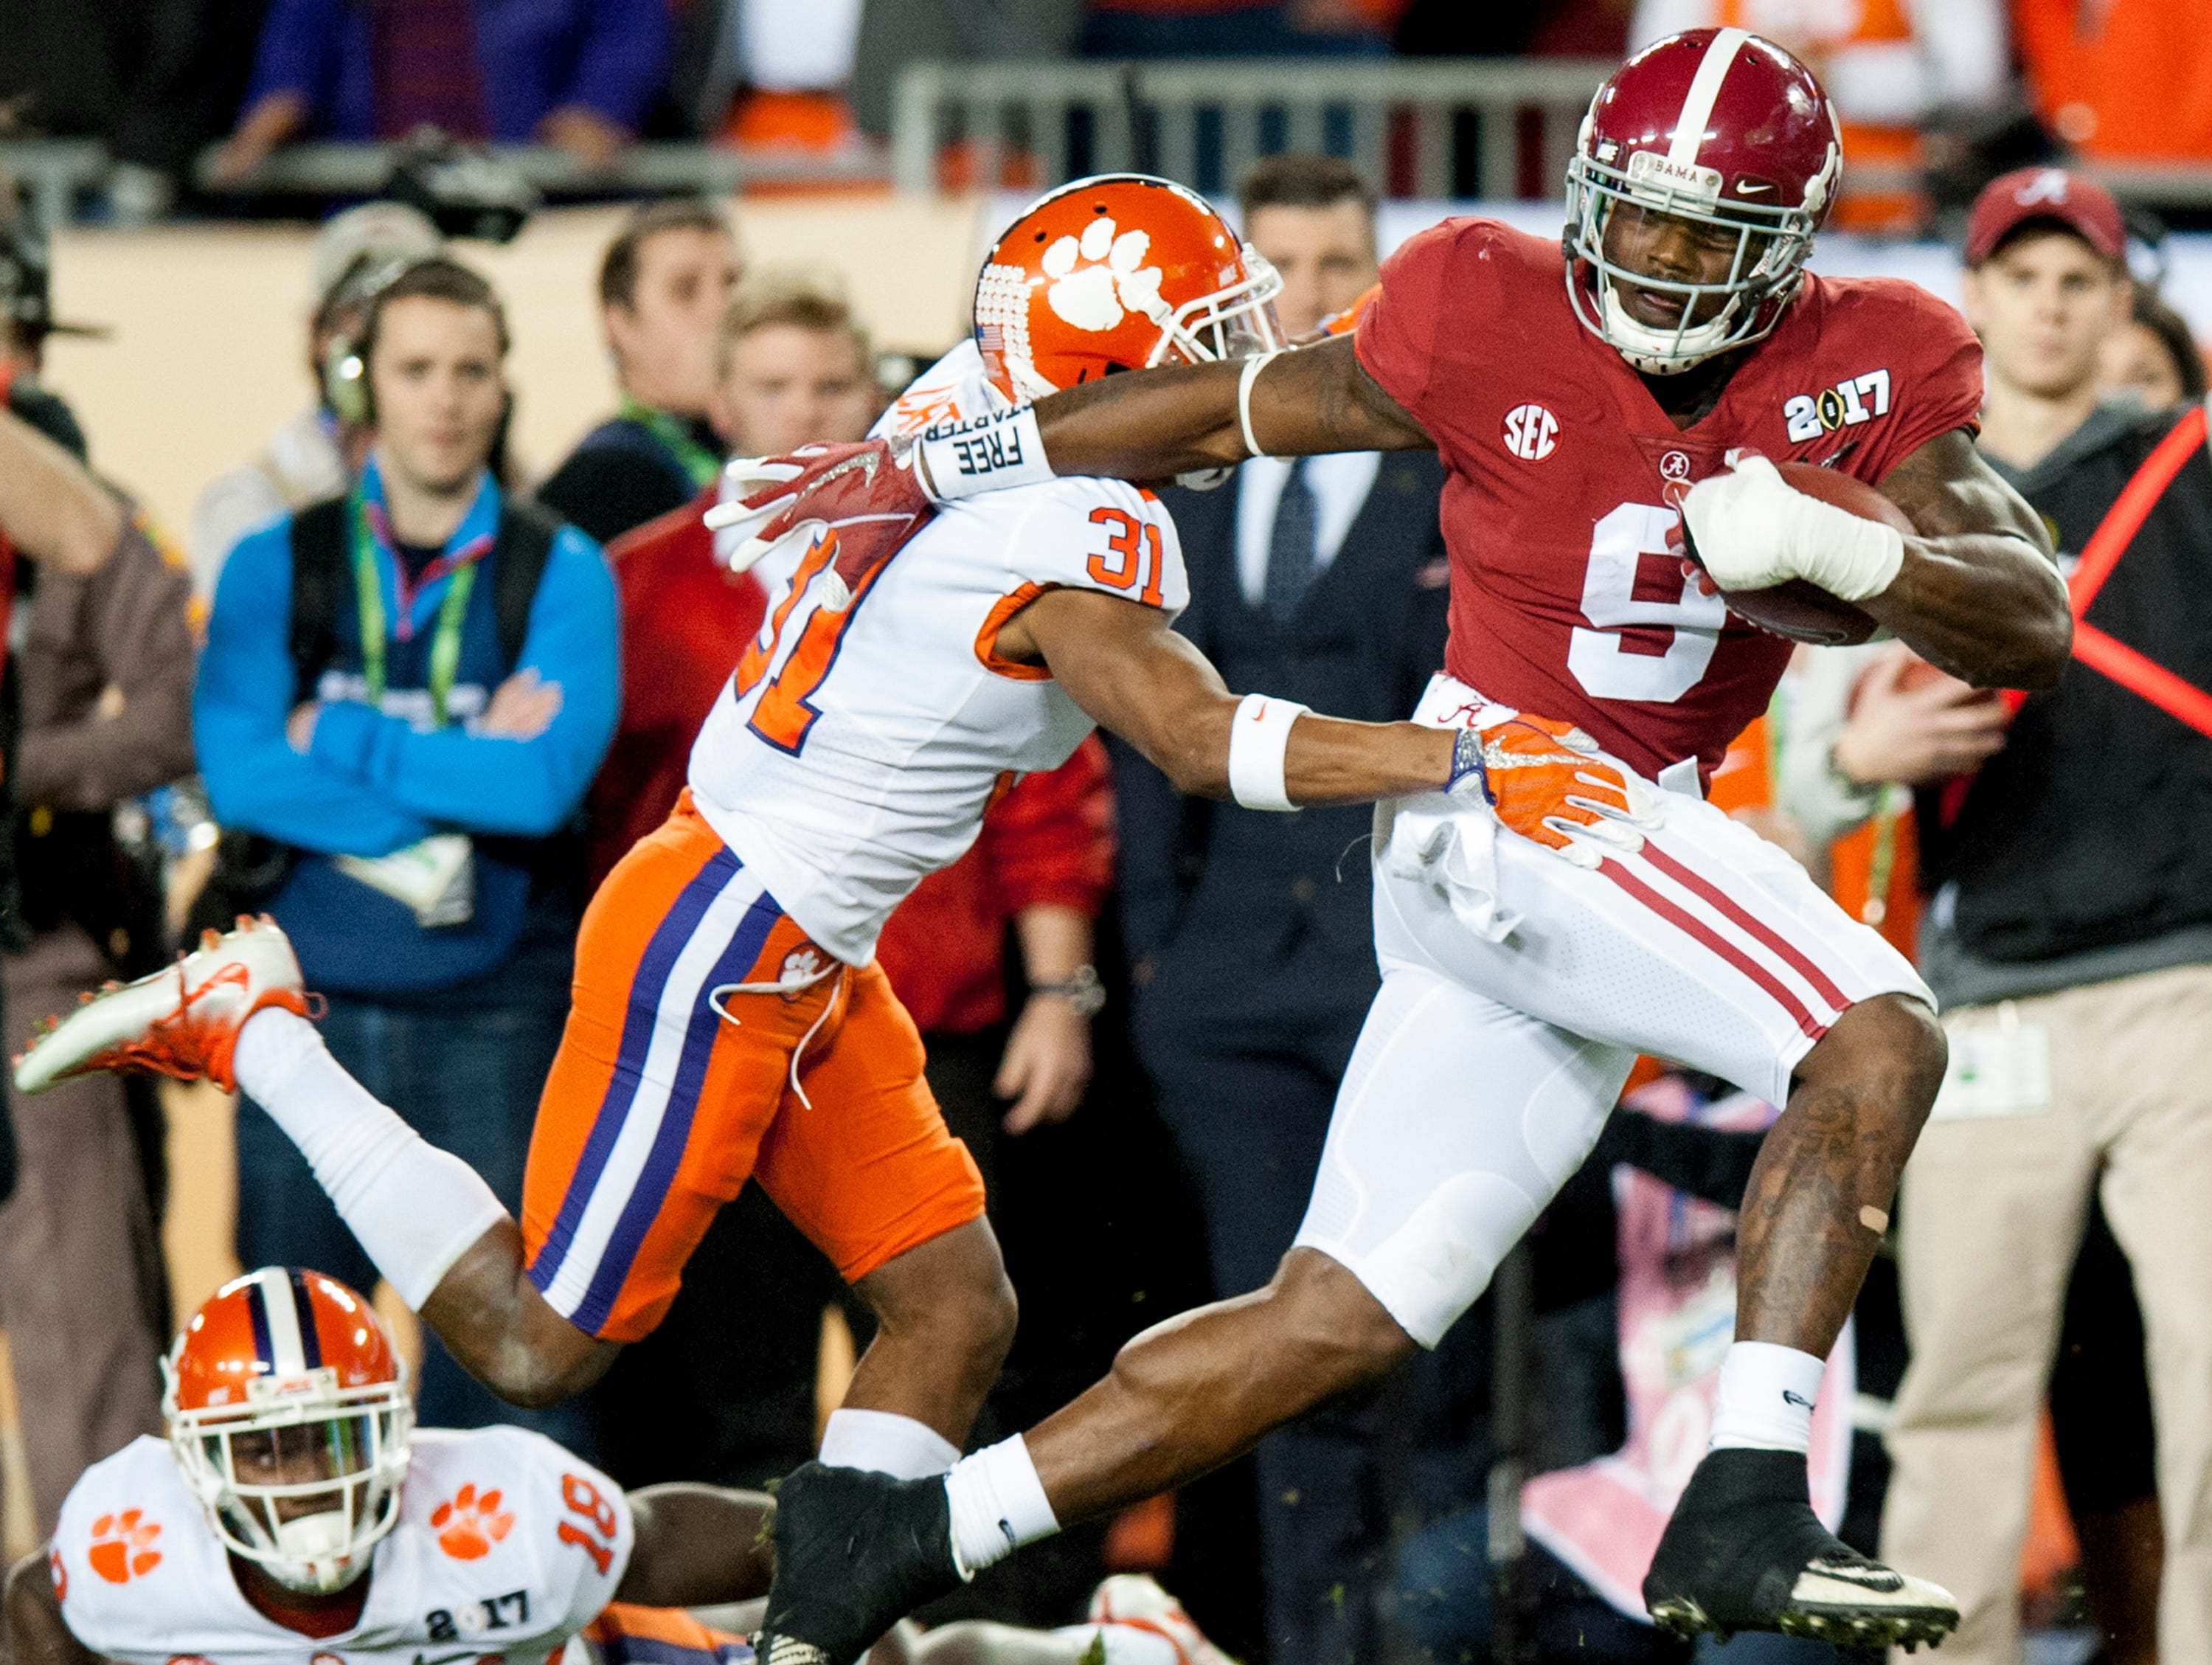 Alabama running back Bo Scarbrough (9) makes his way into the end zone for a first quarter touchdown against Clemson defensive back Ryan Carter (31) in the College Football Playoff National Championship Game at Raymond James Stadium in Tampa, Fla. on Monday January 9, 2017.